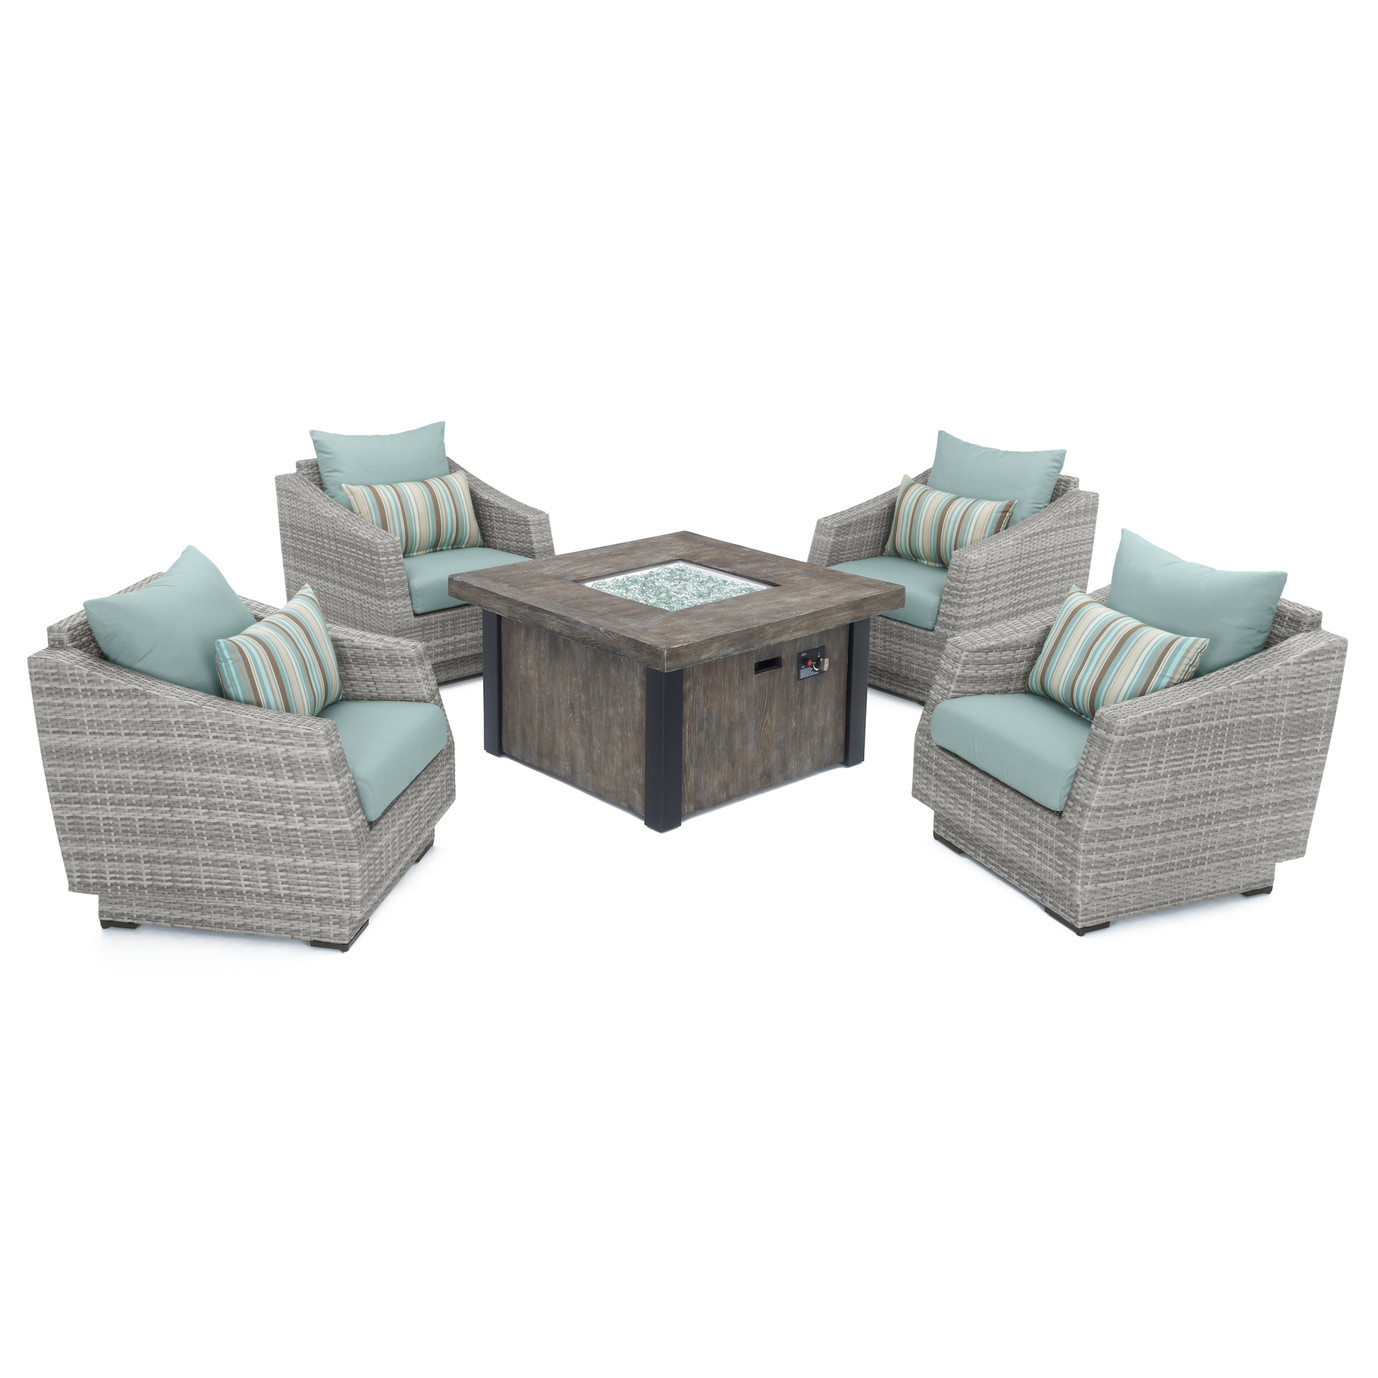 Cannes™ 5pc Fire Chat Set - Bliss Blue